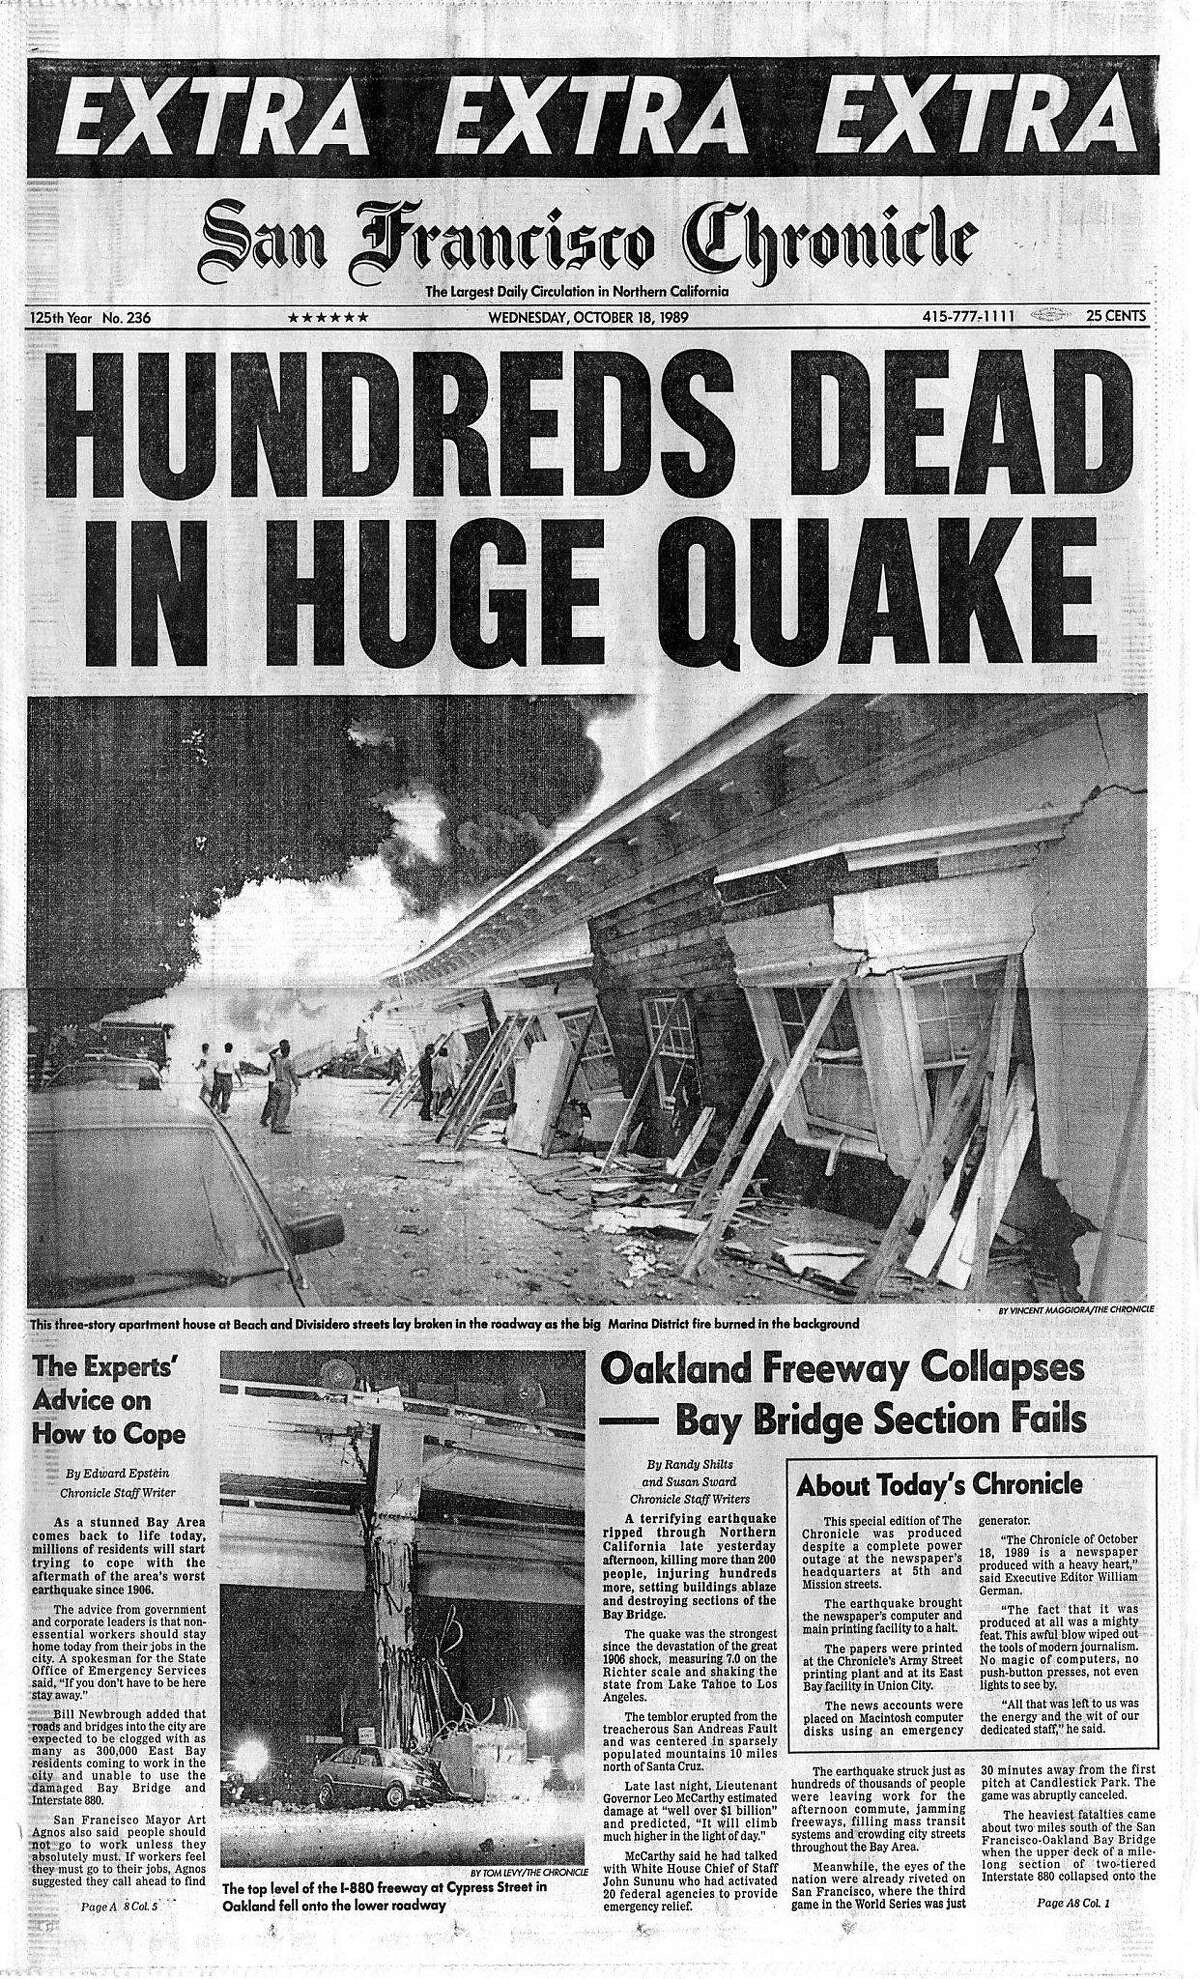 Historic Chronicle Front Page October 18, 1989 Loma Prieta earthquake strikes while less than a hundred died, there was massive damage to the Bay Area